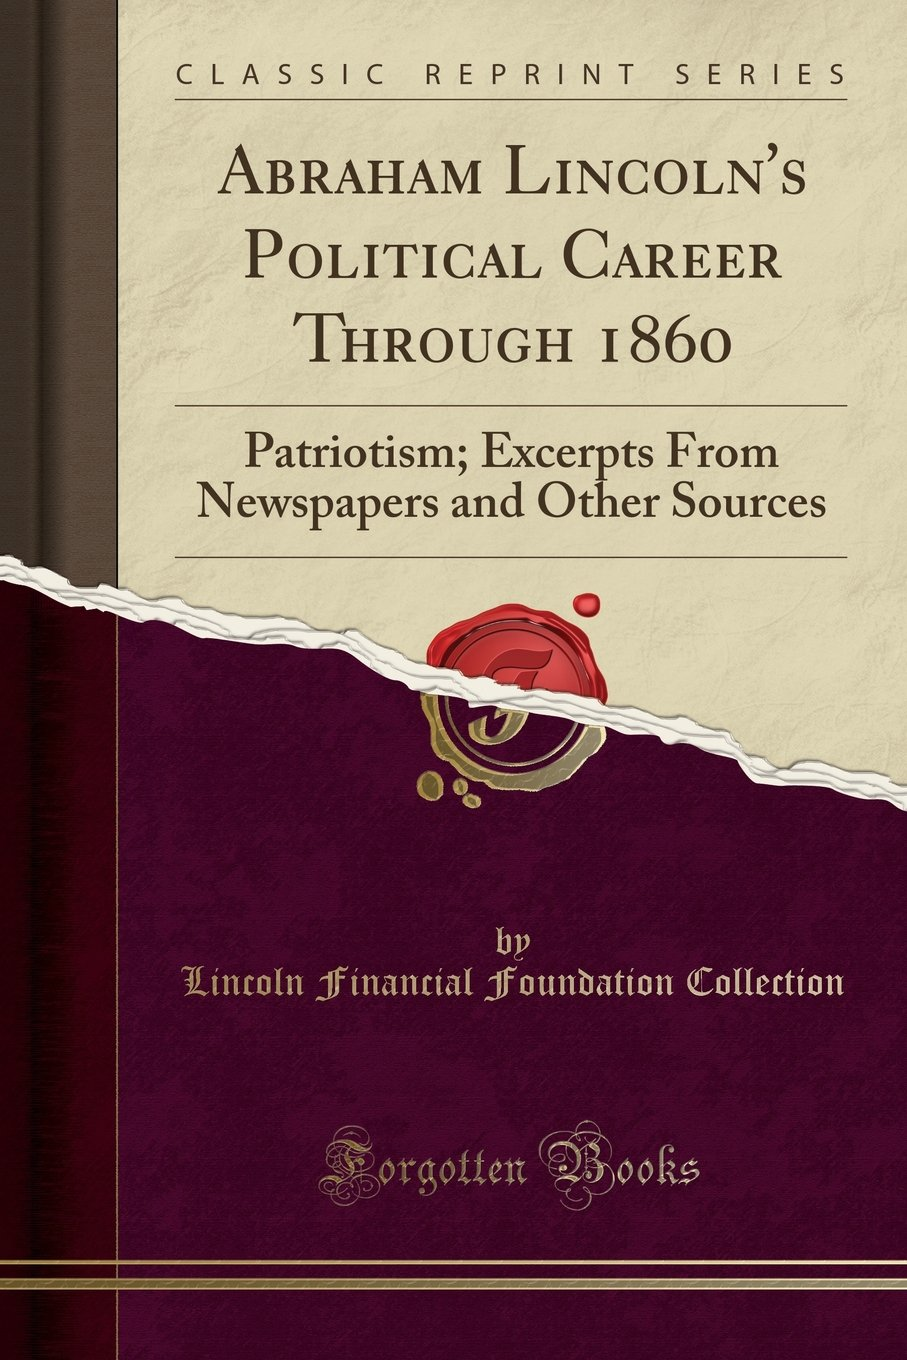 Abraham Lincoln's Political Career Through 1860: Patriotism; Excerpts From Newspapers and Other Sources (Classic Reprint) ebook